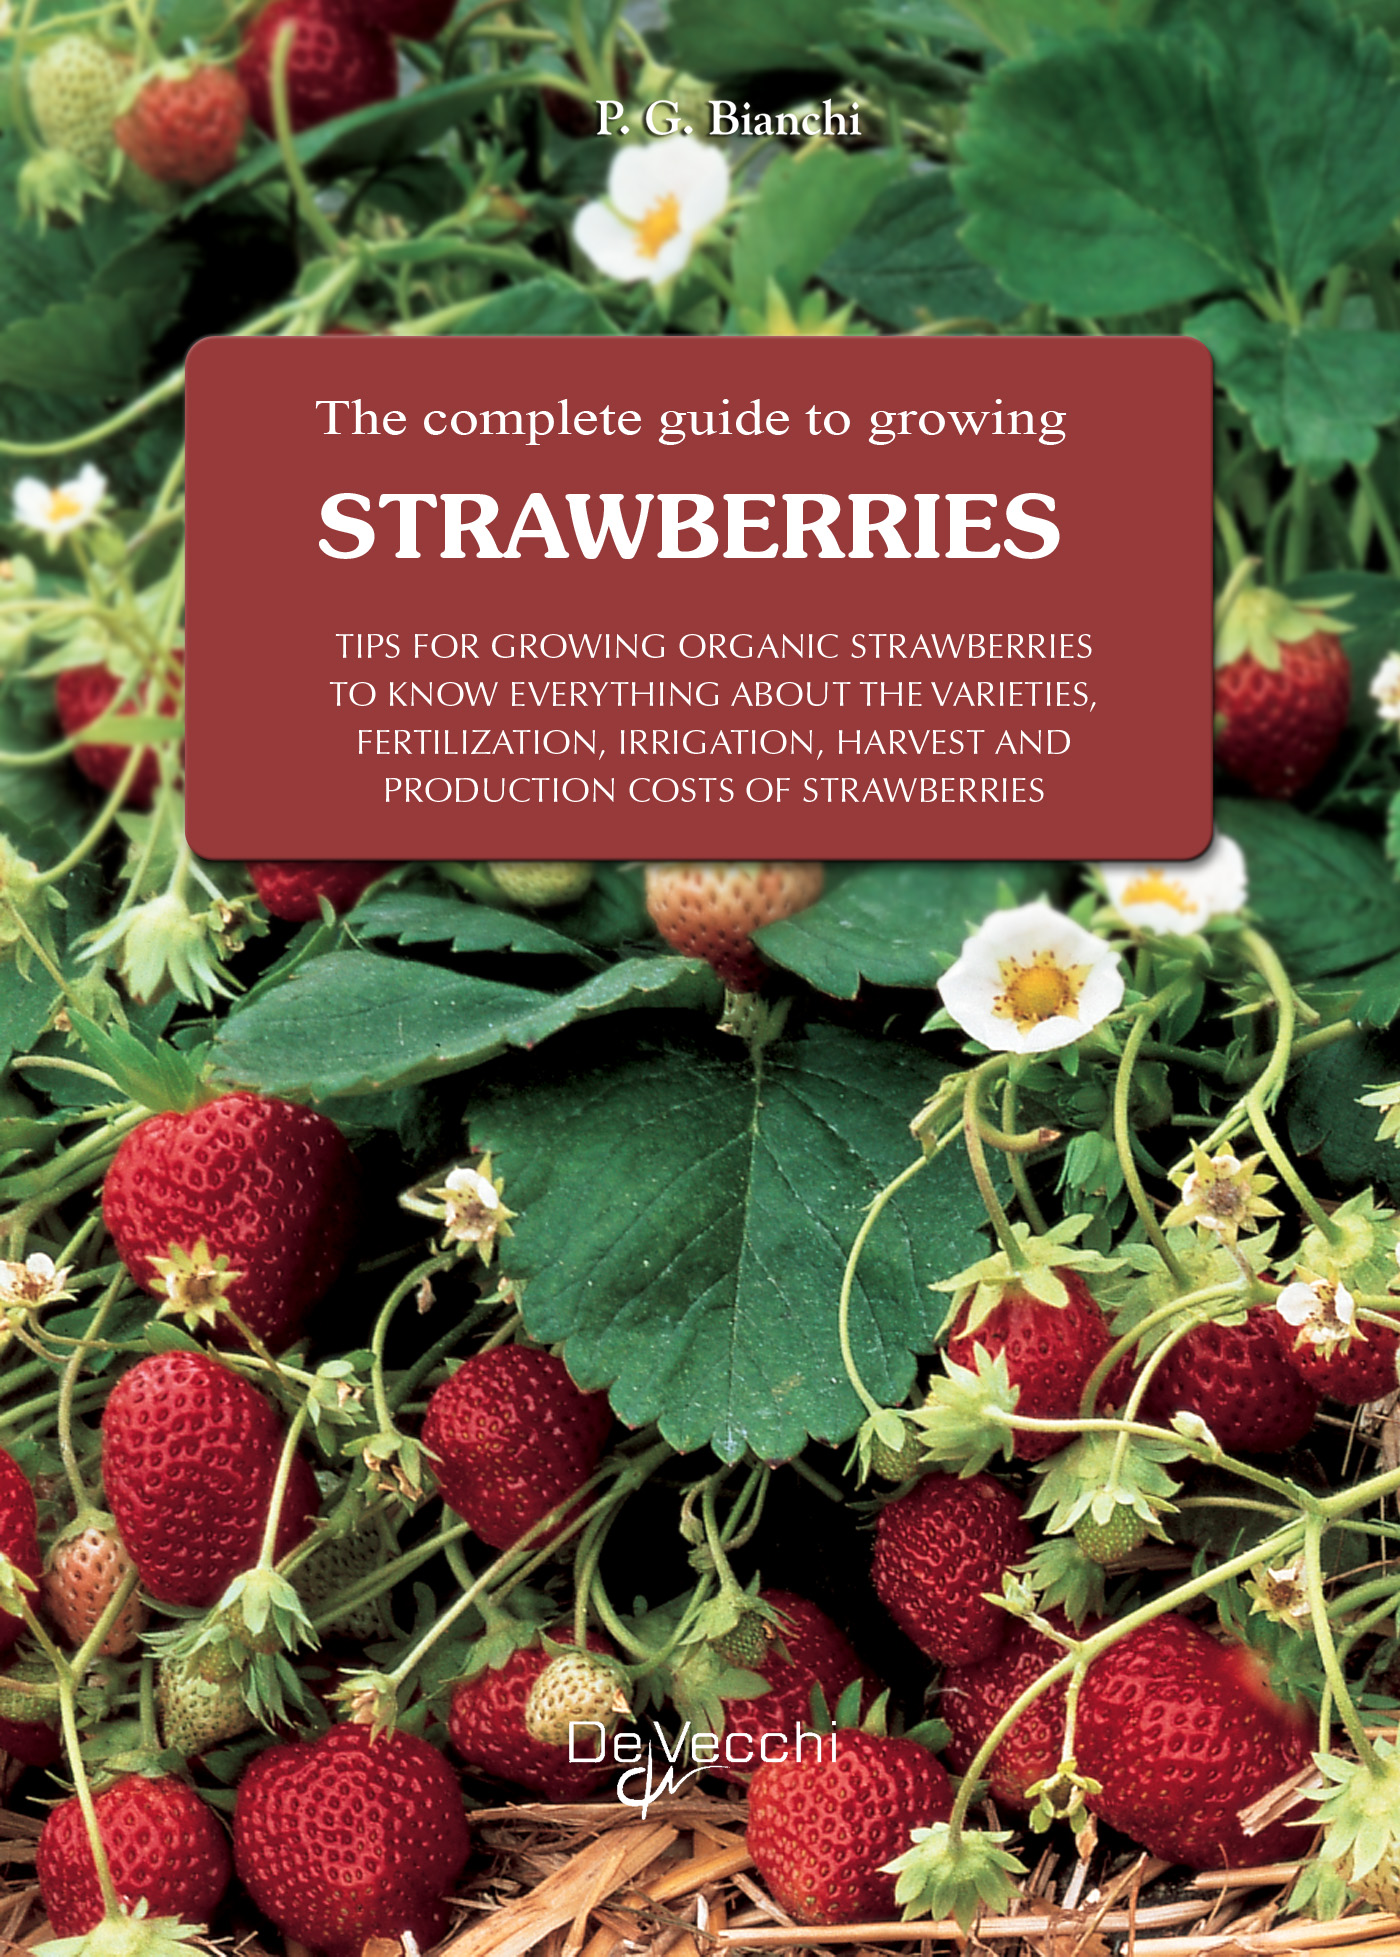 Complete guide to growing strawberries